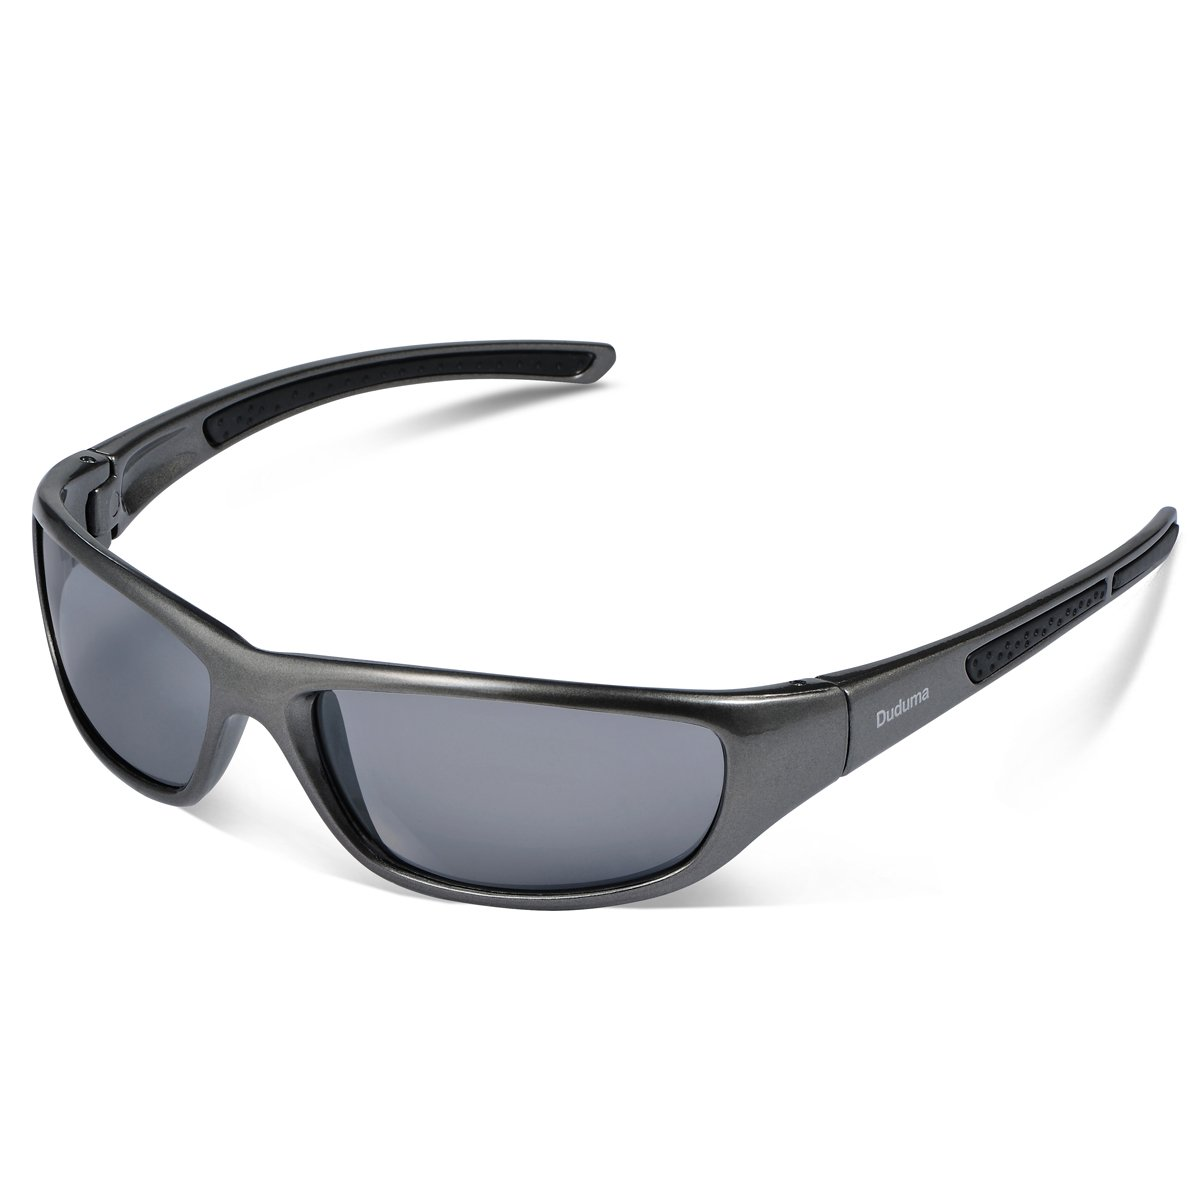 Duduma Tr8116 Polarized Sports Sunglasses for Baseball Cycling Fishing Golf Superlight Frame by Duduma